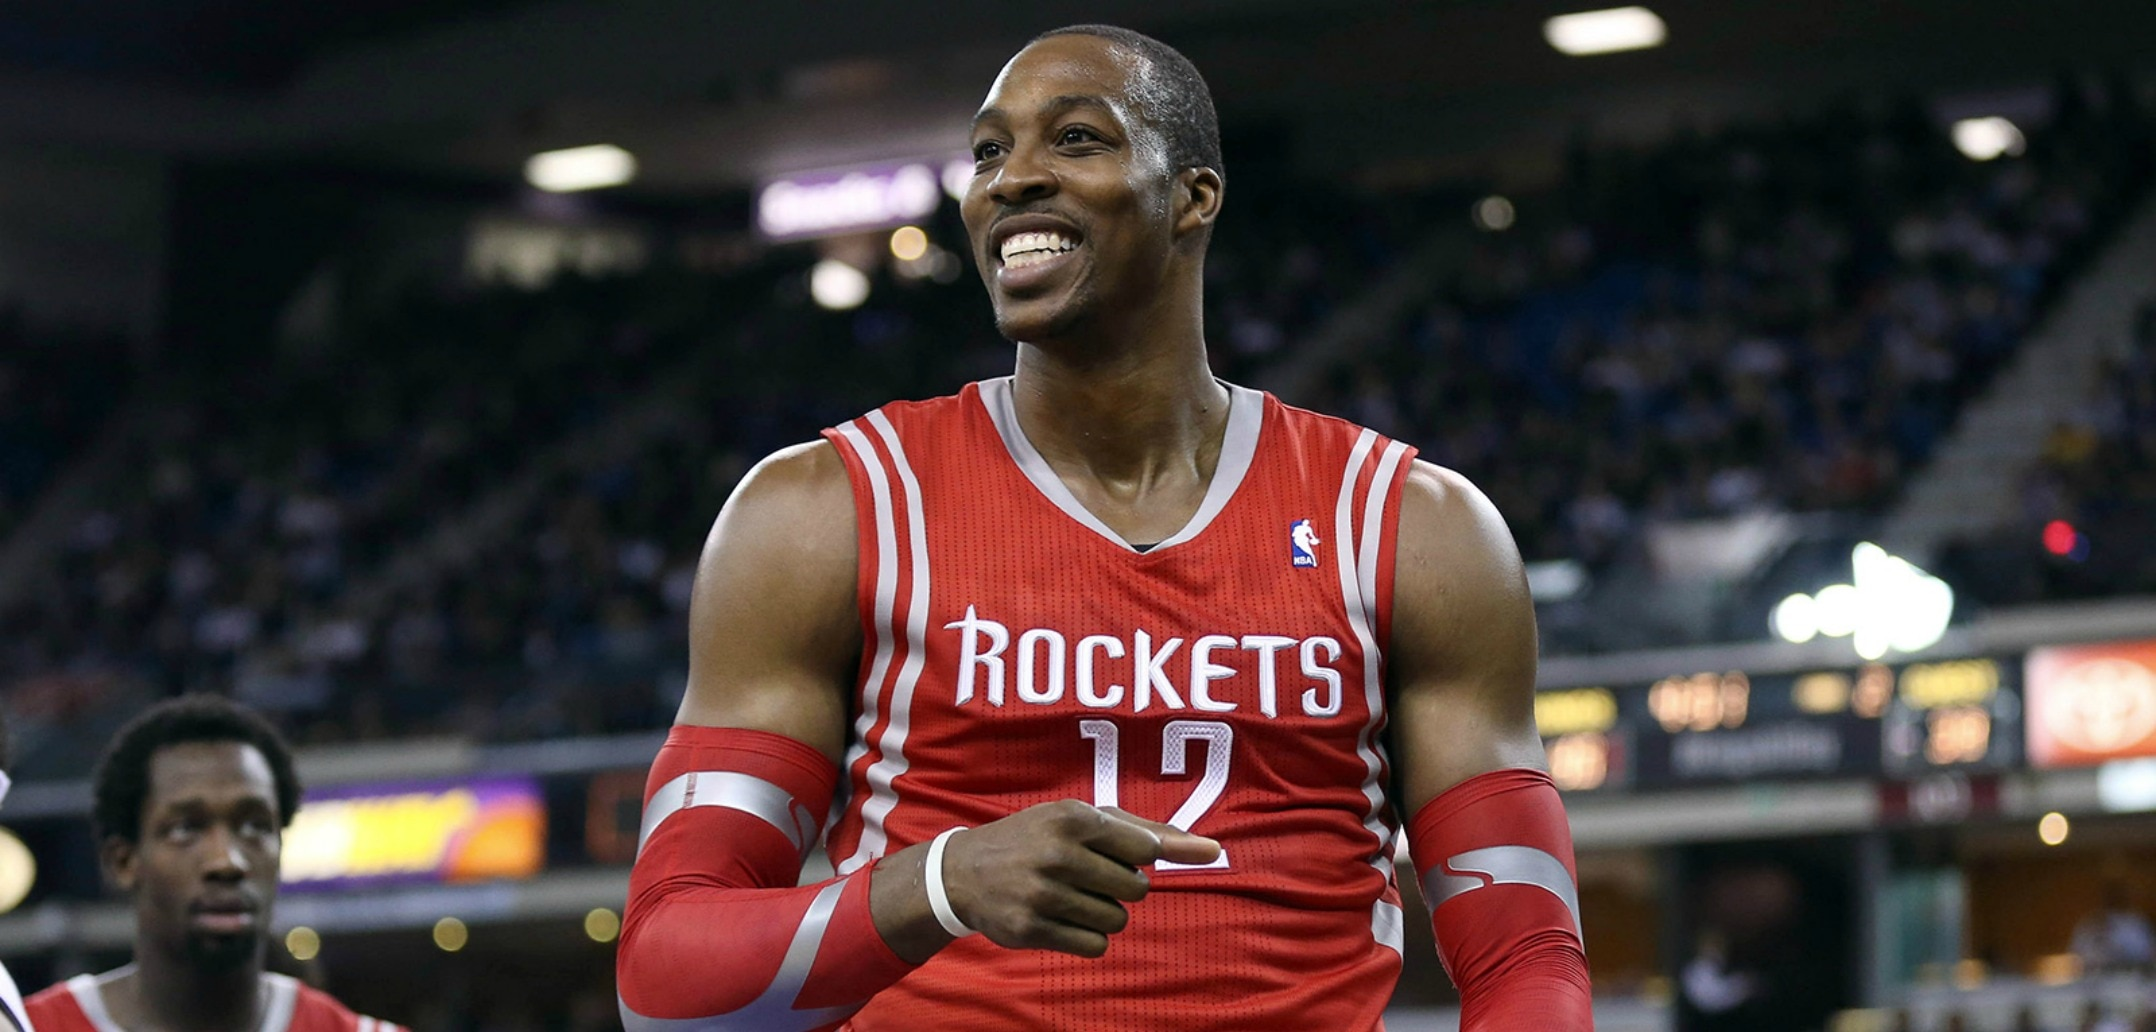 Courtesy of USA Today Images: Dwight Howard will play an important role in Houston's playoff run.